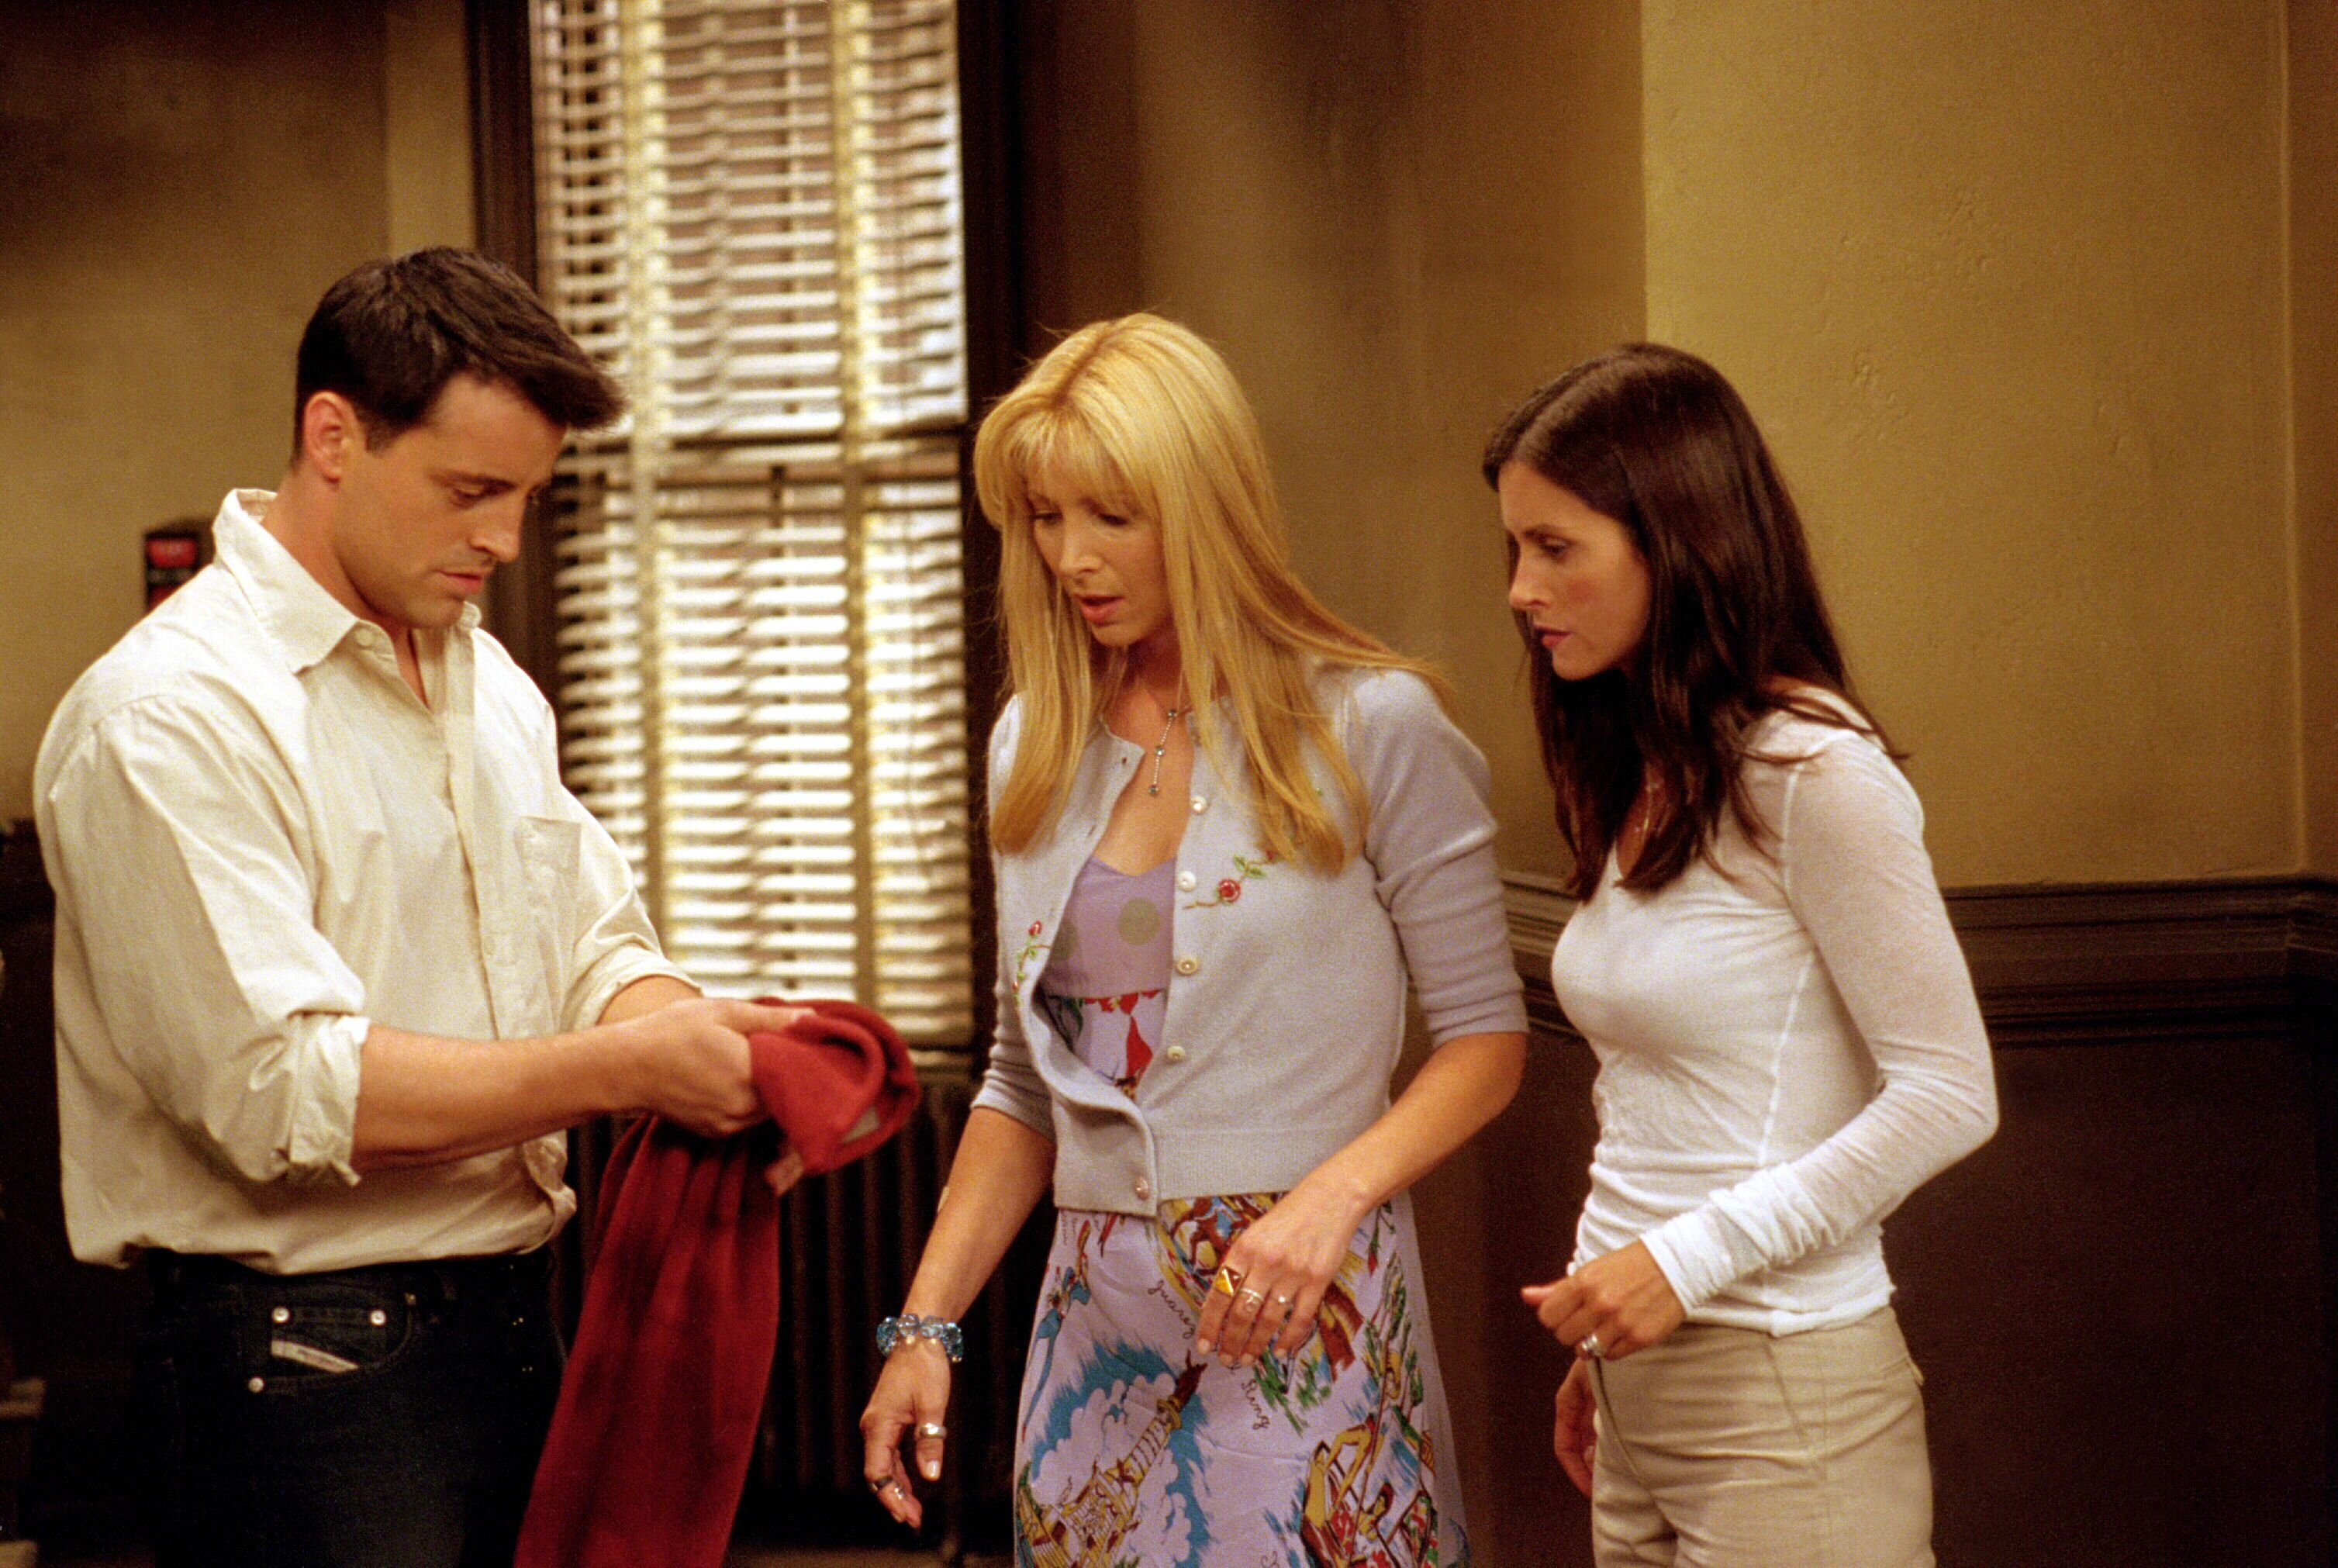 Joey Phoebe Monica Friends Episode Pics Season 08 Episode 2